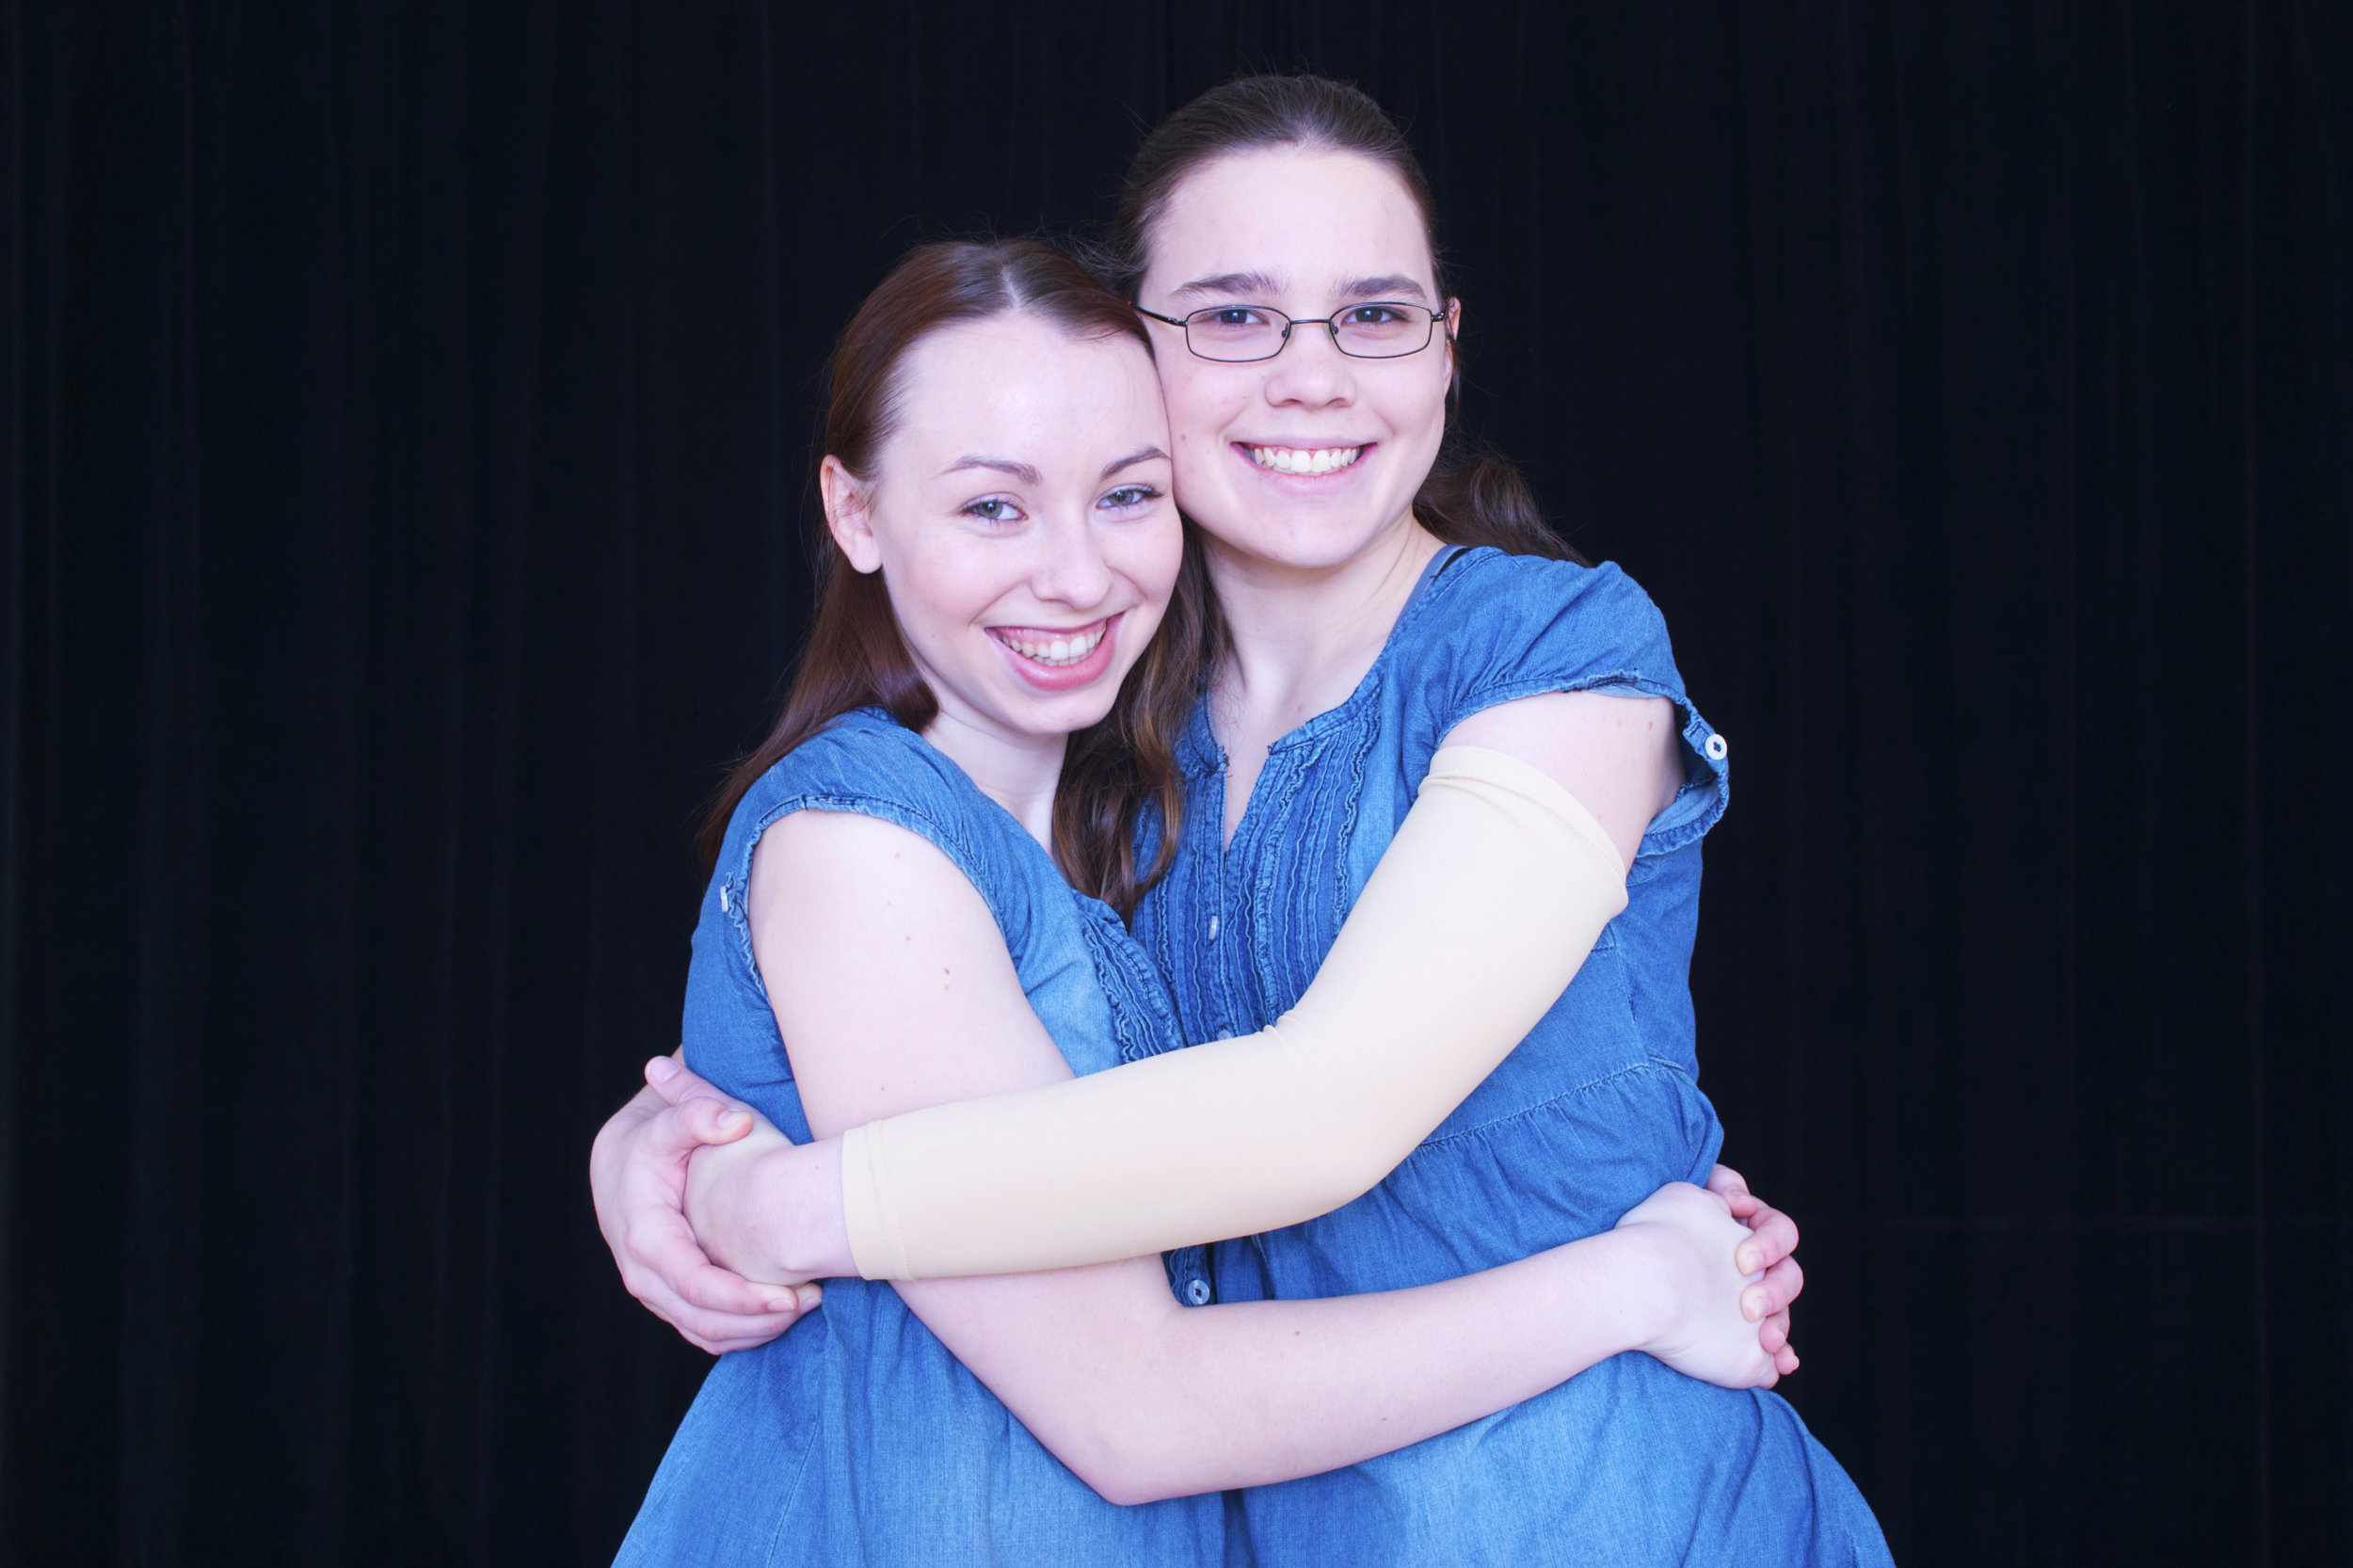 KATIE (RIGHT) WITH HER BEST DANCE FRIEND NATALIE.  ABOVE IMAGE:  KATIE ZOBEL PERFORMING IN THE RAINBOW DANCE CONCERT HER SENIOR YEAR.